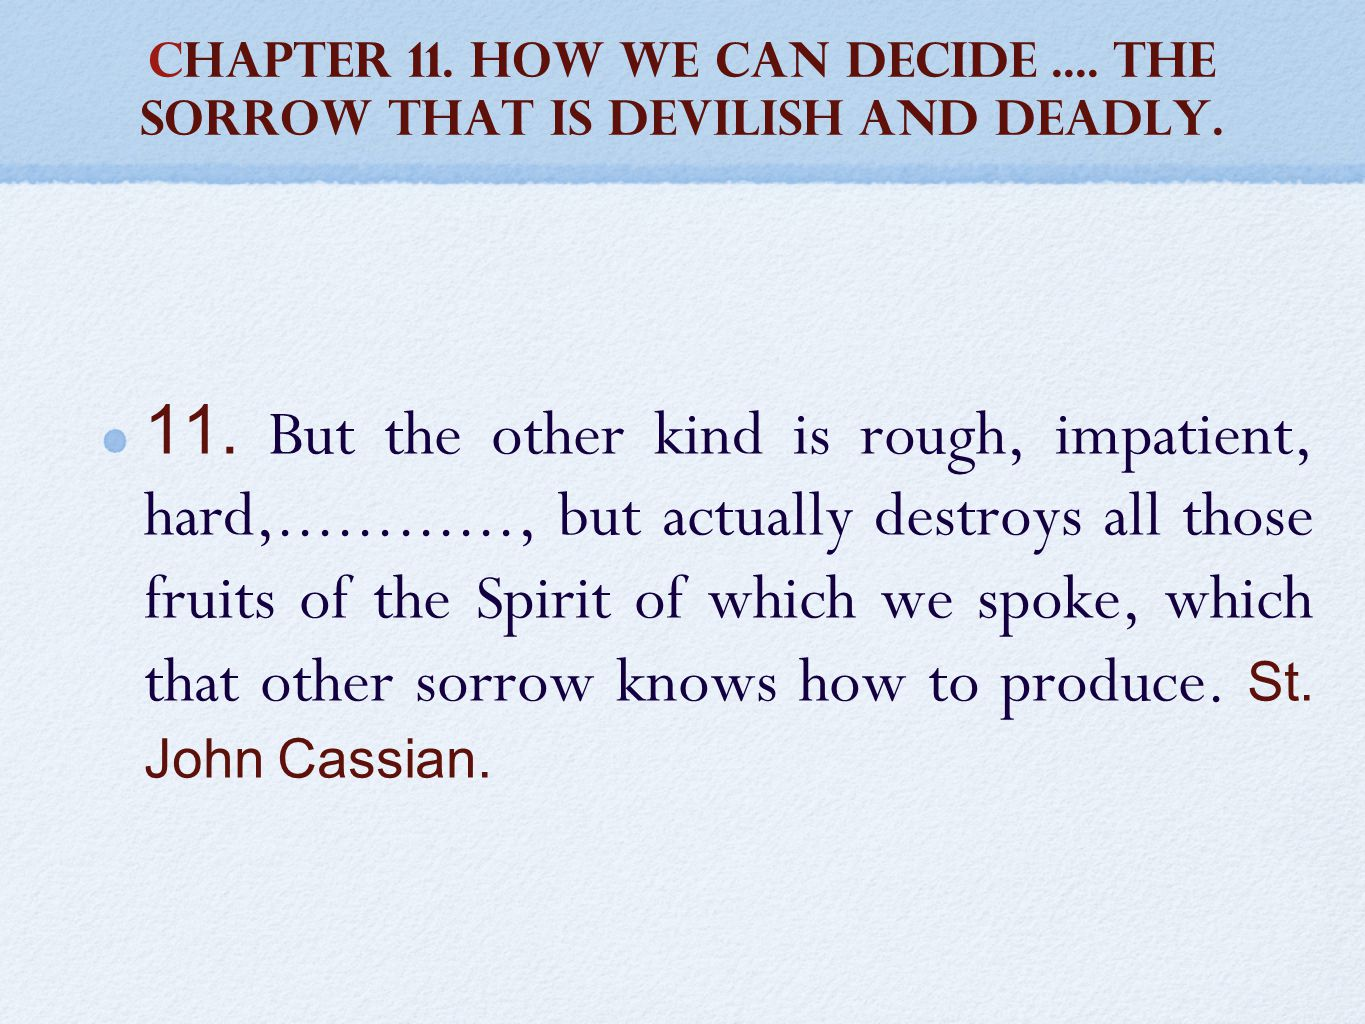 CHAPTER 11. How we can decide.... the sorrow that is devilish and deadly.